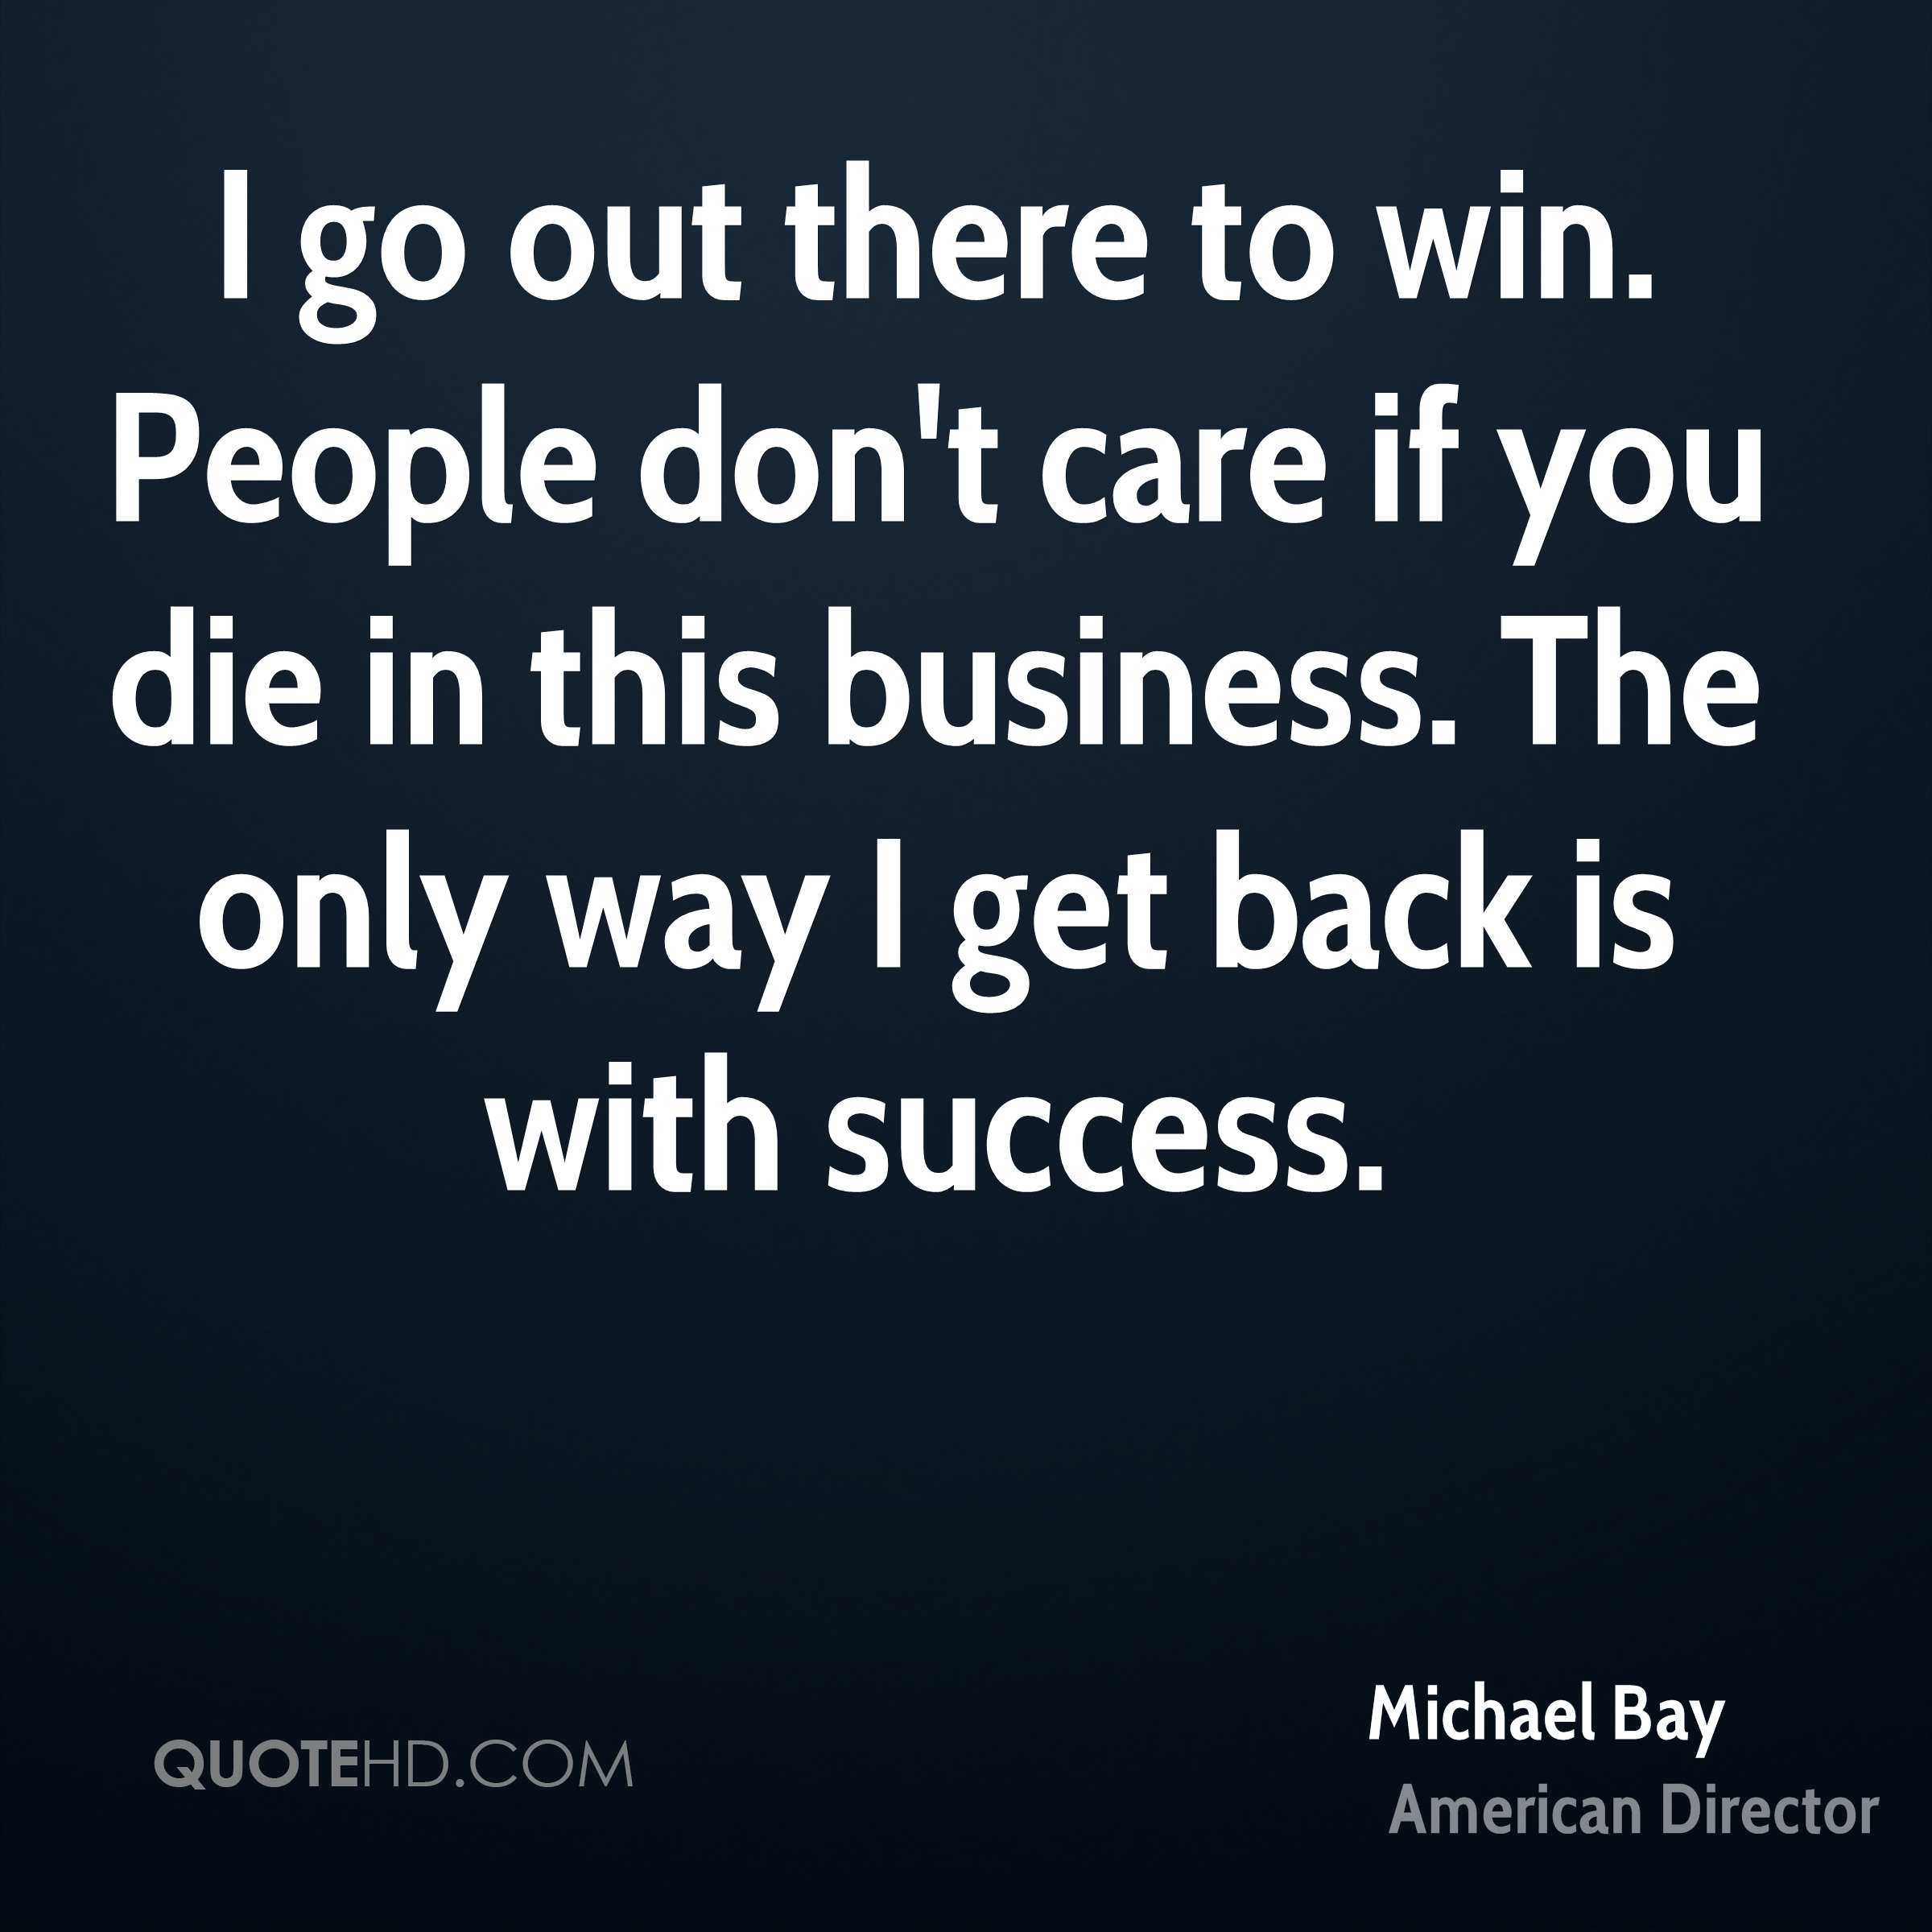 I go out there to win. People don't care if you die in this business. The only way I get back is with success.